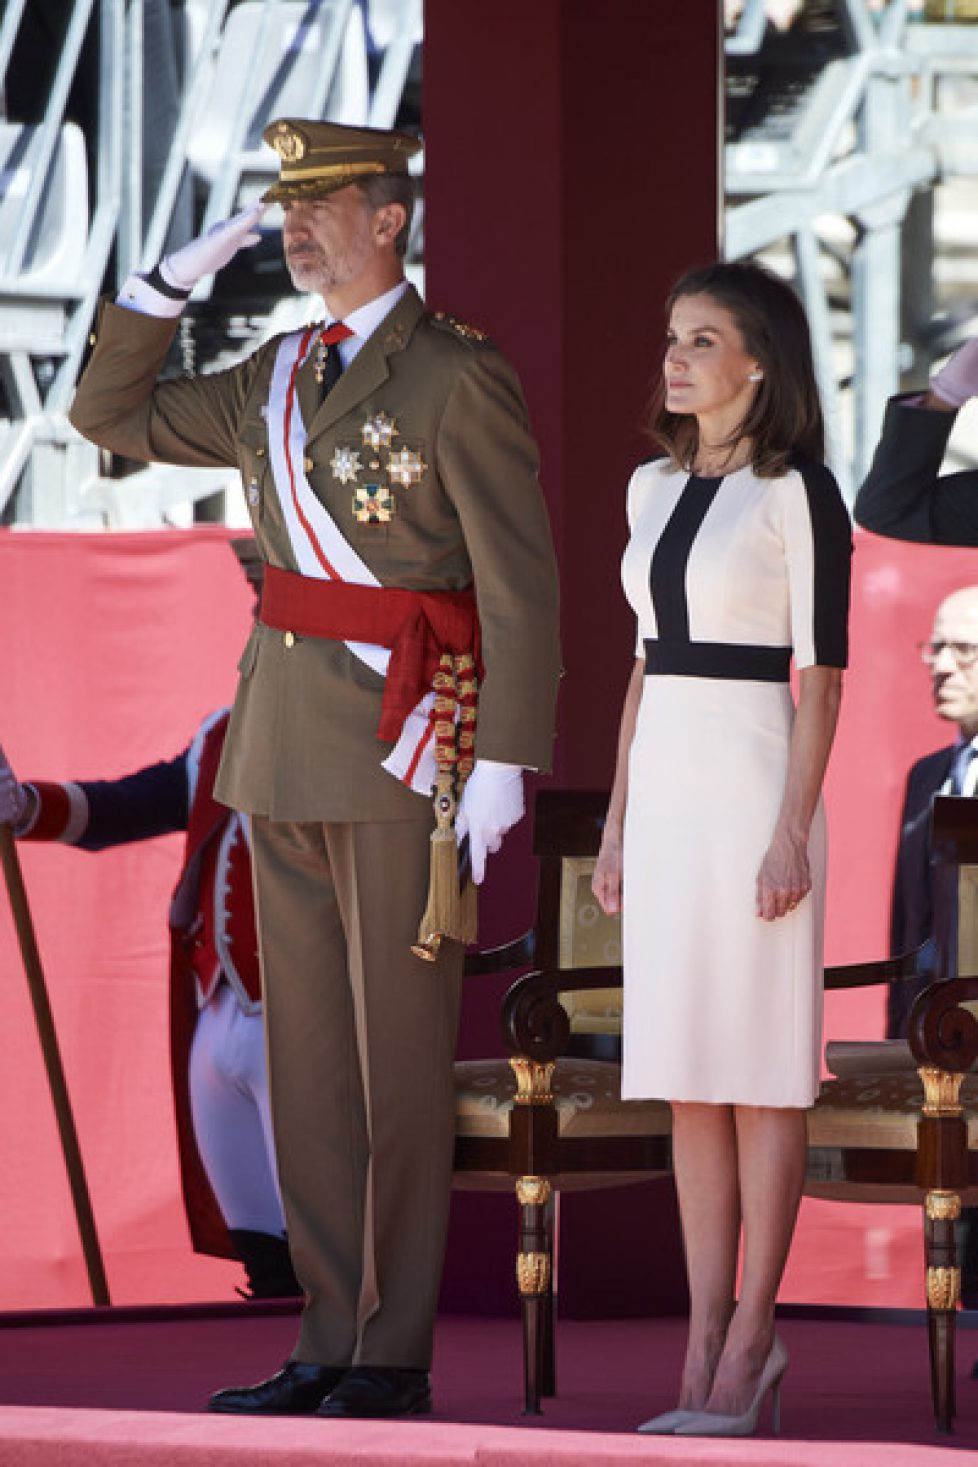 Spanish+Royals+Attend+175th+Anniversary+Civil+sl8BOtYIlwEl